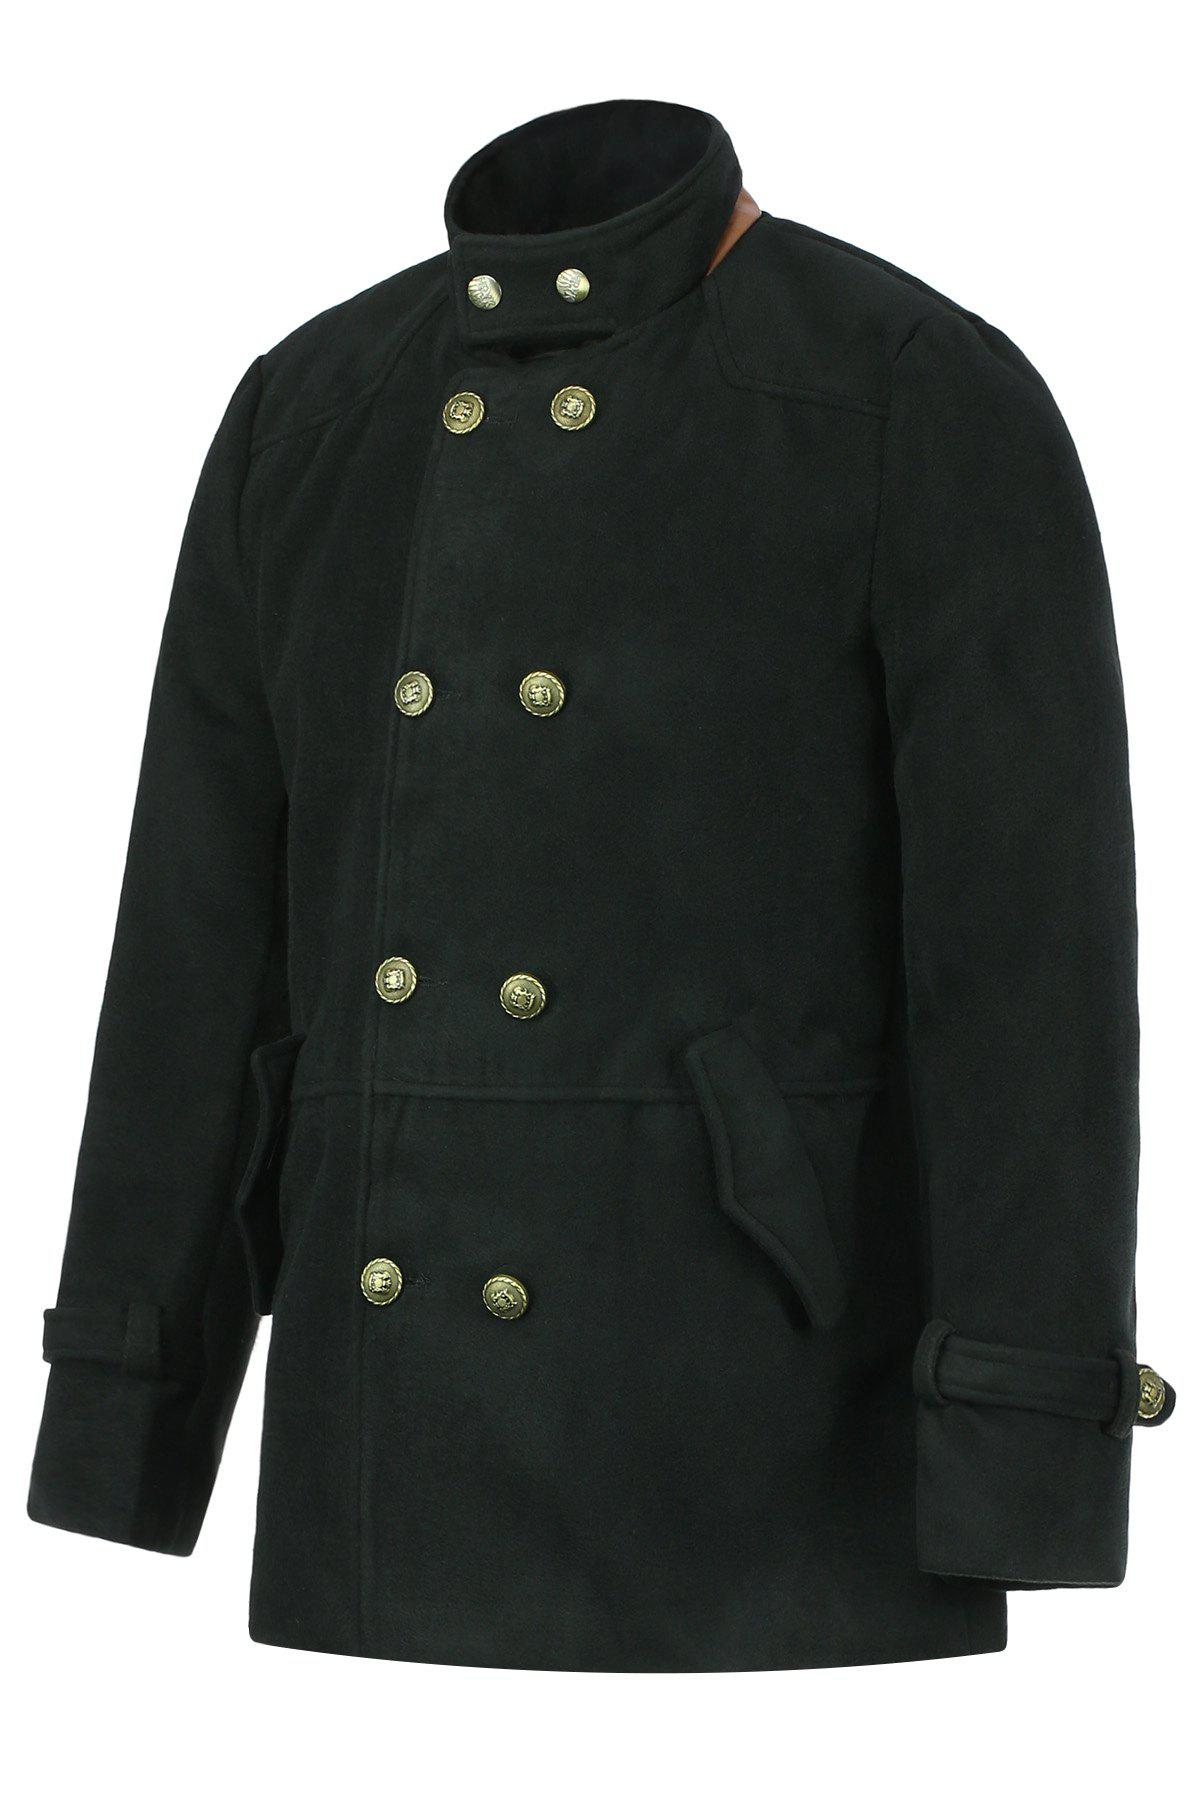 Slimming Trendy Stand Collar Double-Breasted Solid Color Button Embellished Long Sleeves Men's Woolen Coat - BLACK 2XL